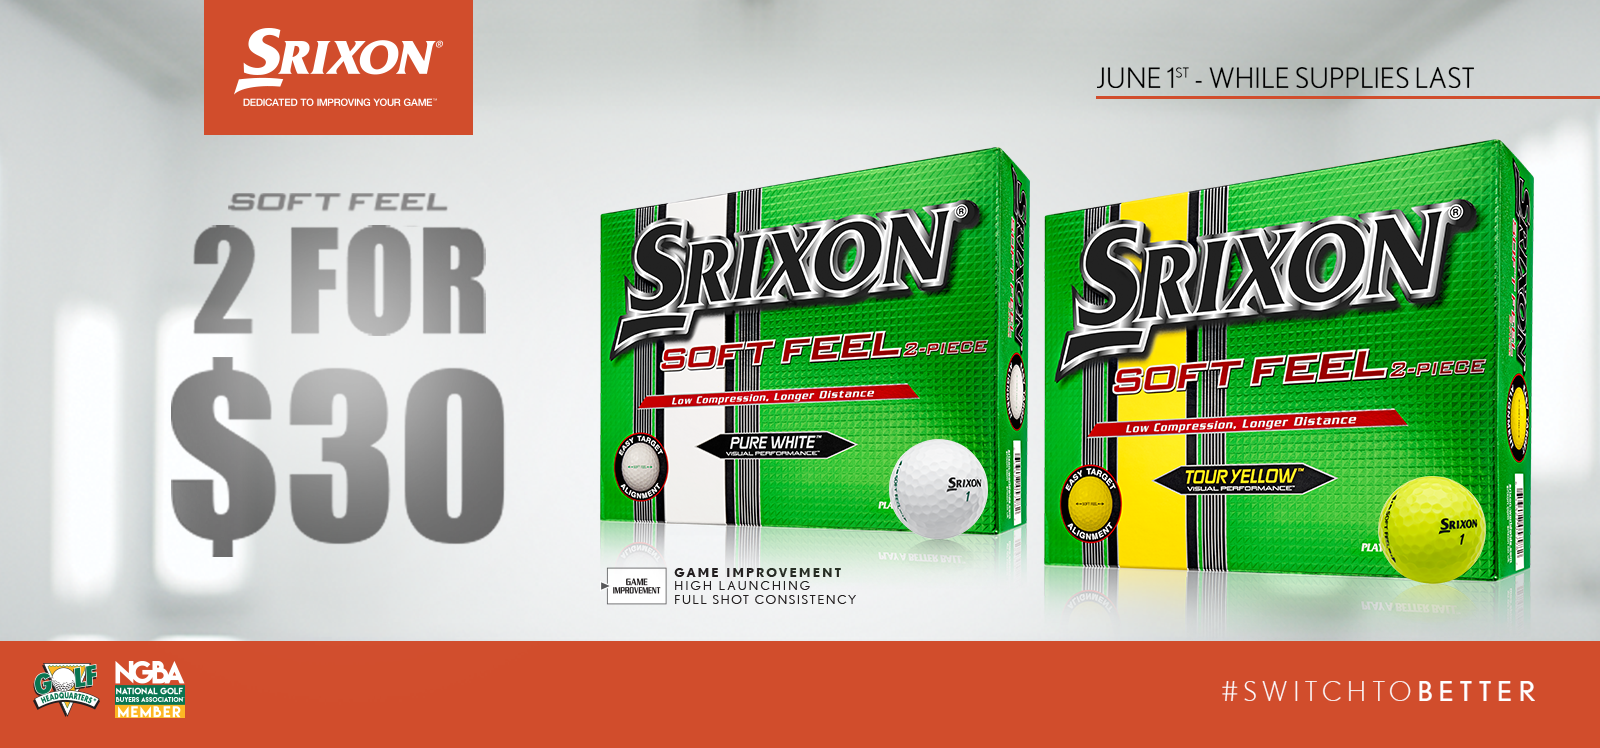 1600x748_srixon-softfeel_2for30_ghq-ngba